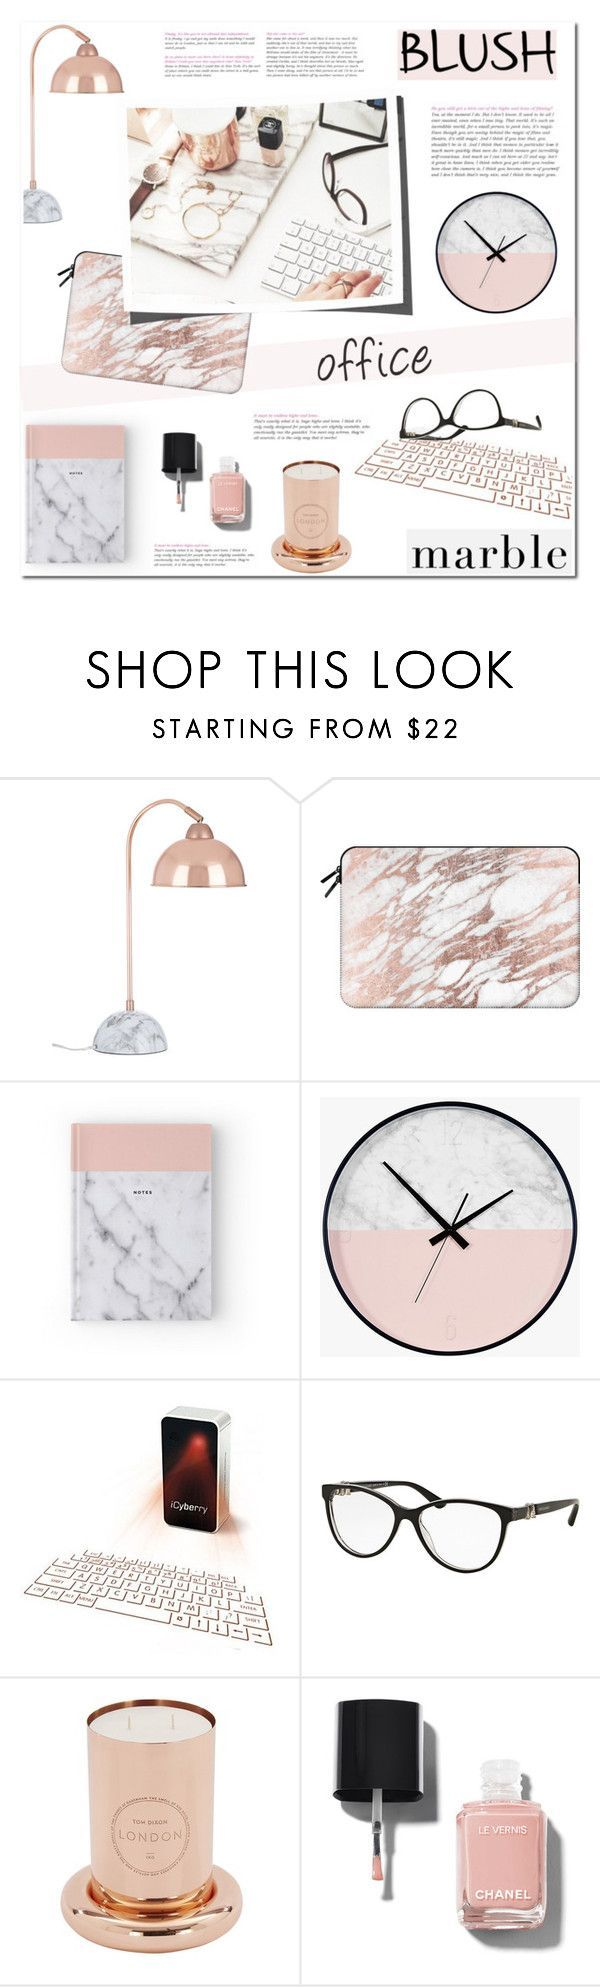 Blush Marble Office Details By Helenevlacho Liked On Polyvore Featuring Interior